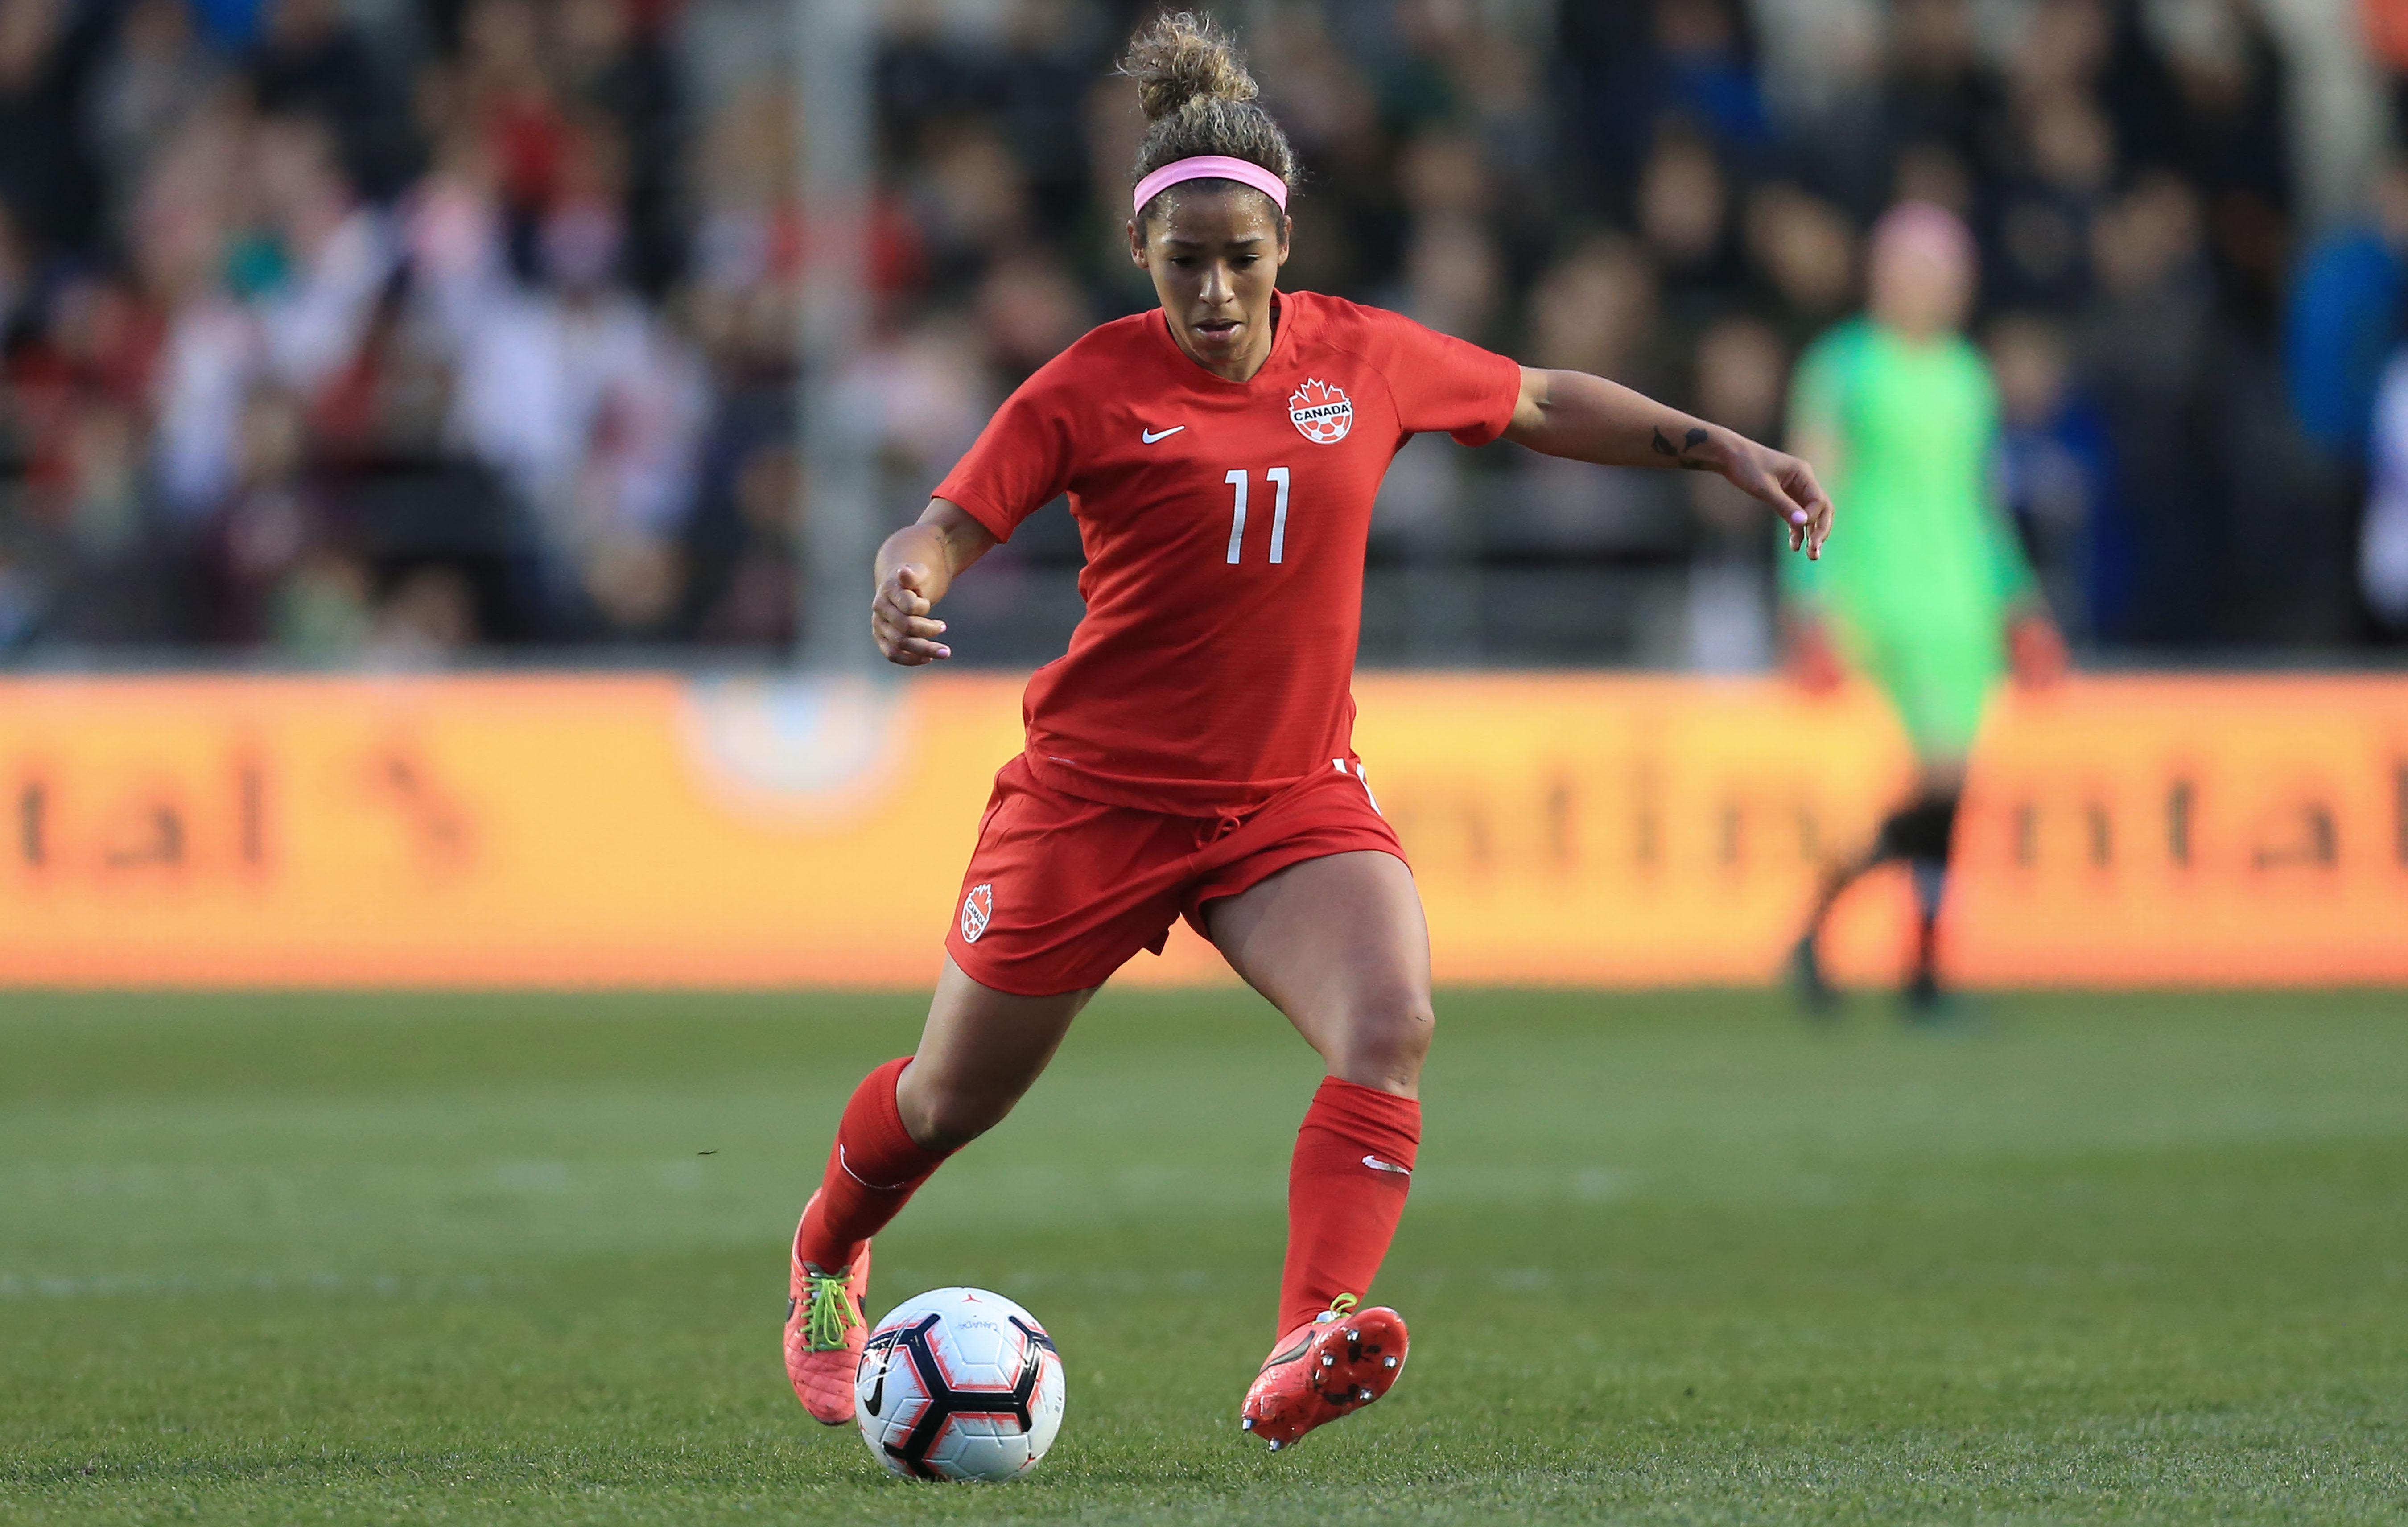 Desiree Scott in action for Canada. (Canada Soccer file photo by Simon Stacpoole)